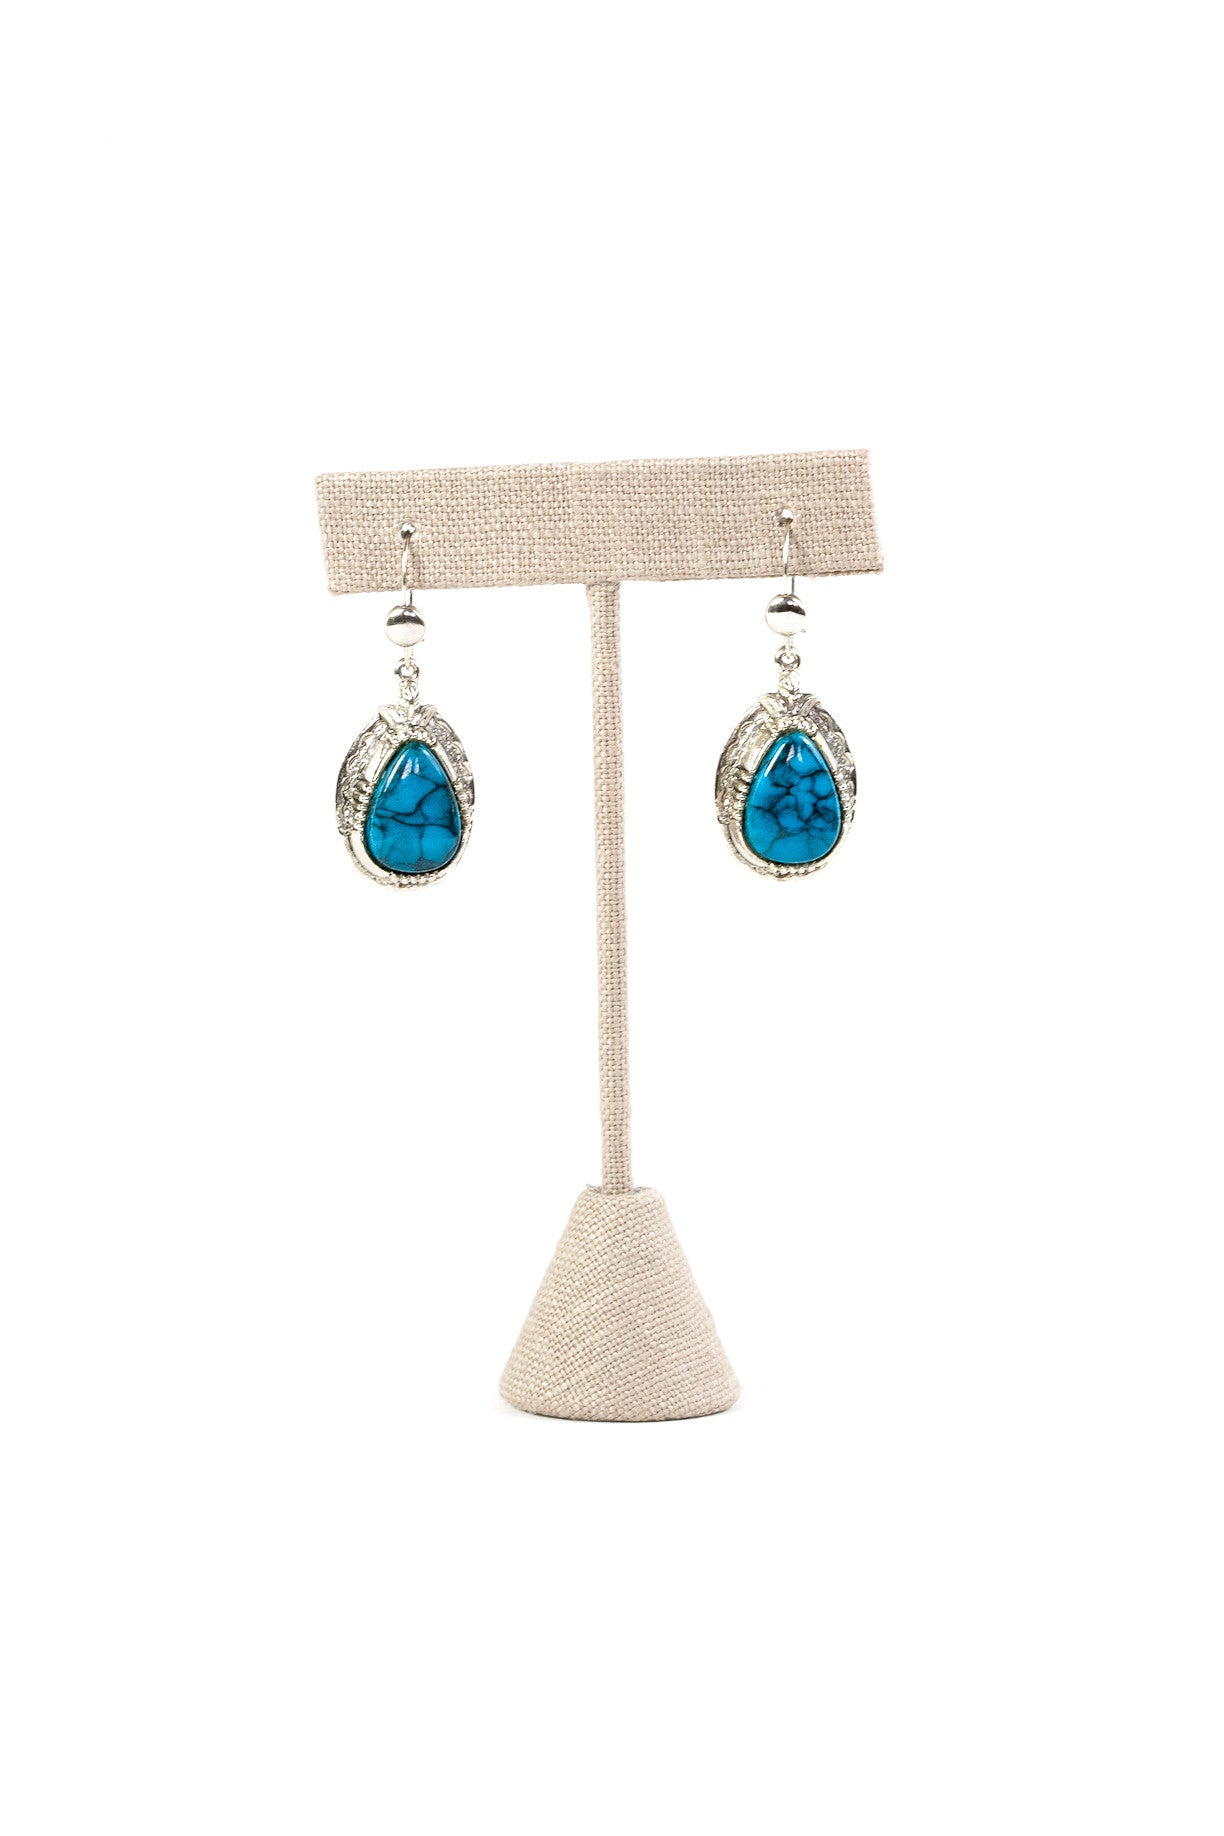 80's__Vintage__Turquoise Drop Earrings